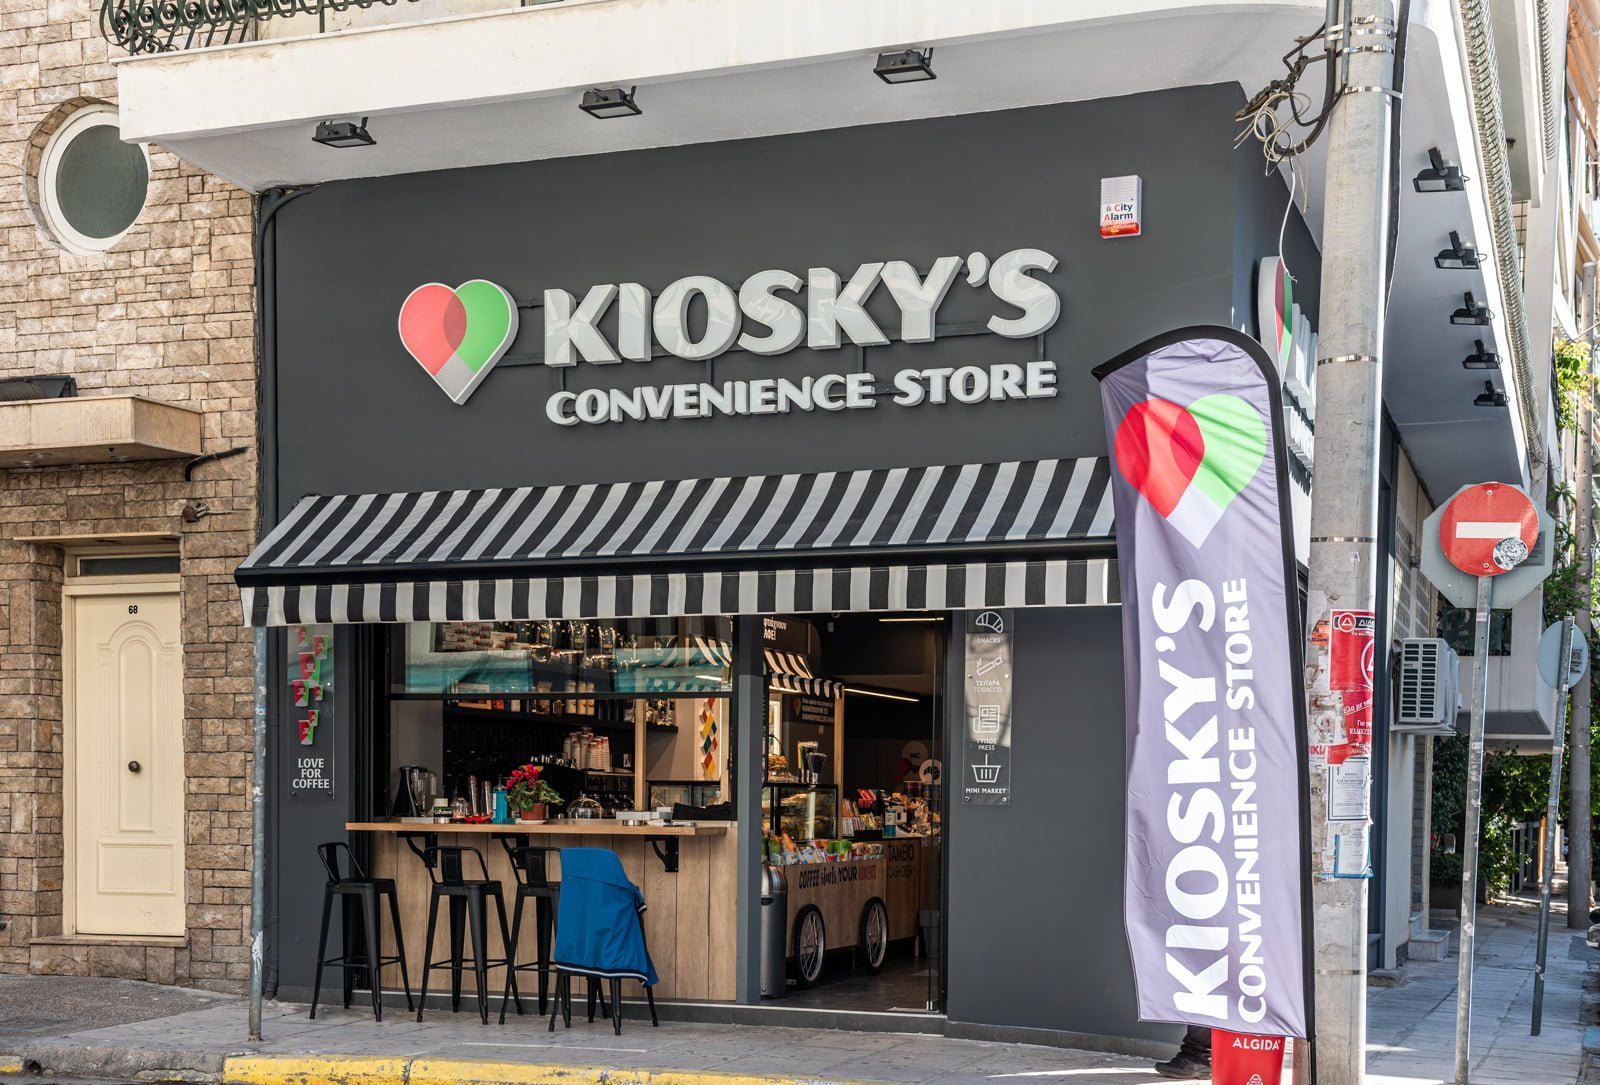 KIOSKY'S CONVENIENCE STORE: Ιστορίες επιτυχίας από franchisees